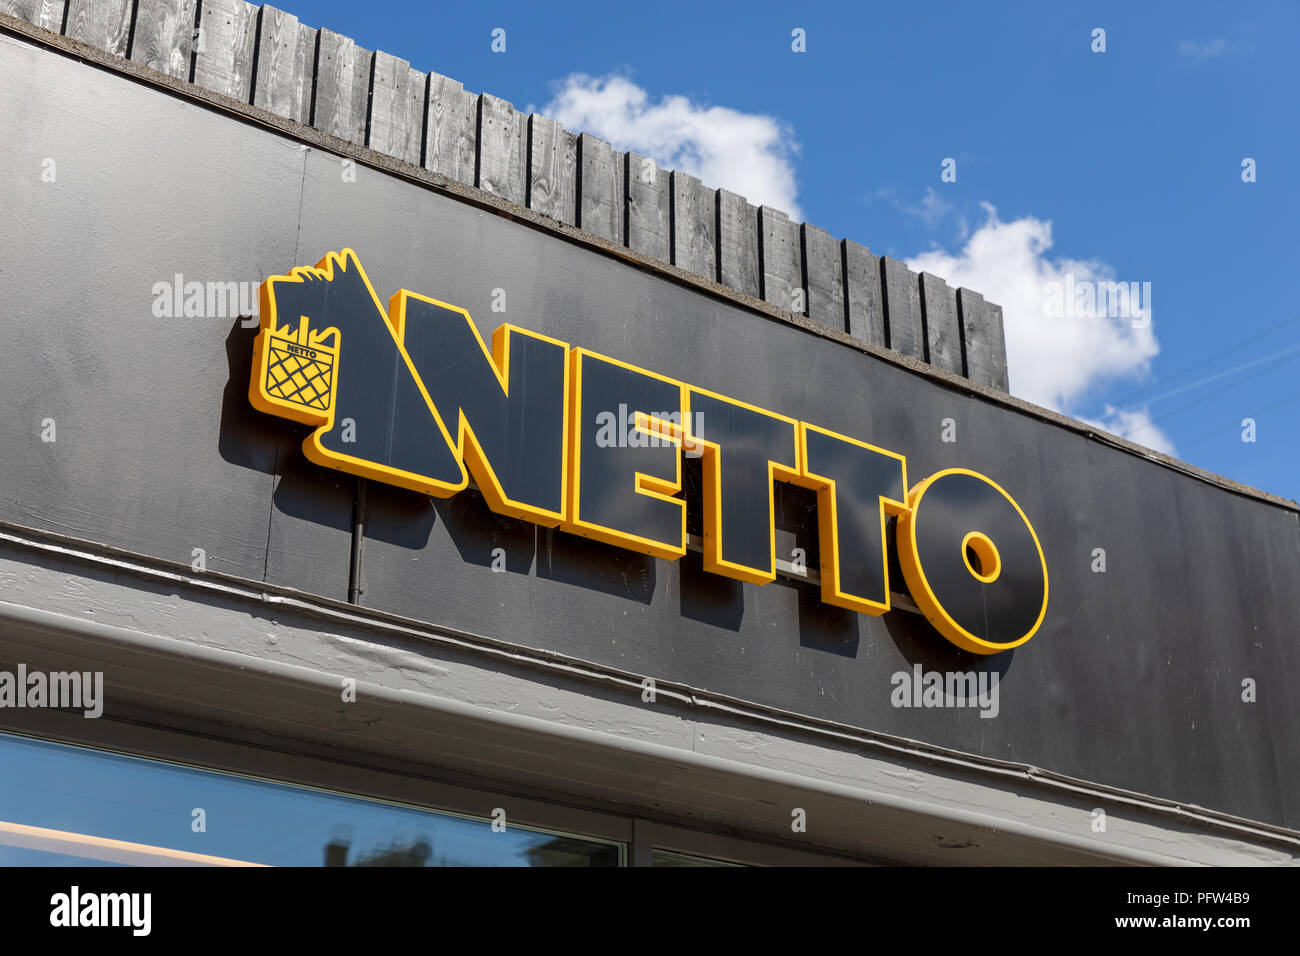 netto-danish-discount-supermarket-chain-sign-copenhagen-denmark-PFW4B9.jpg